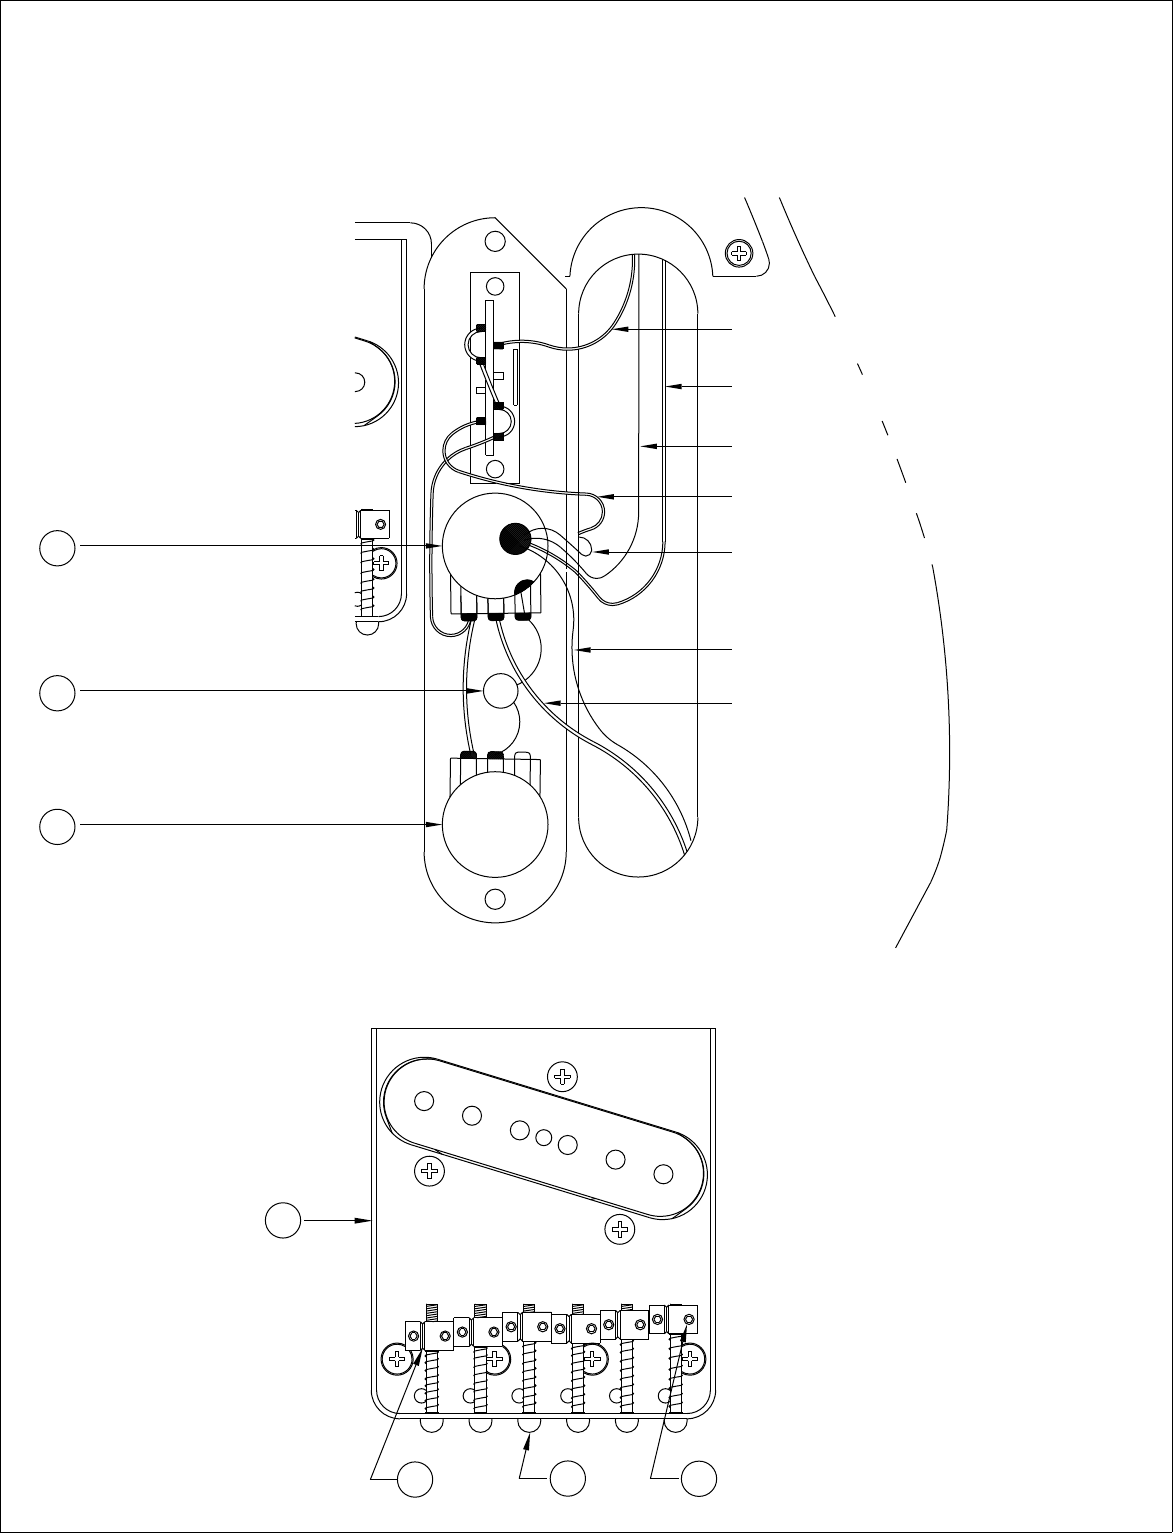 Fender 013 8602a Sisd James Burton Telecaster Wiring Diagram Control Assembly Standard 0138602 White Wire From